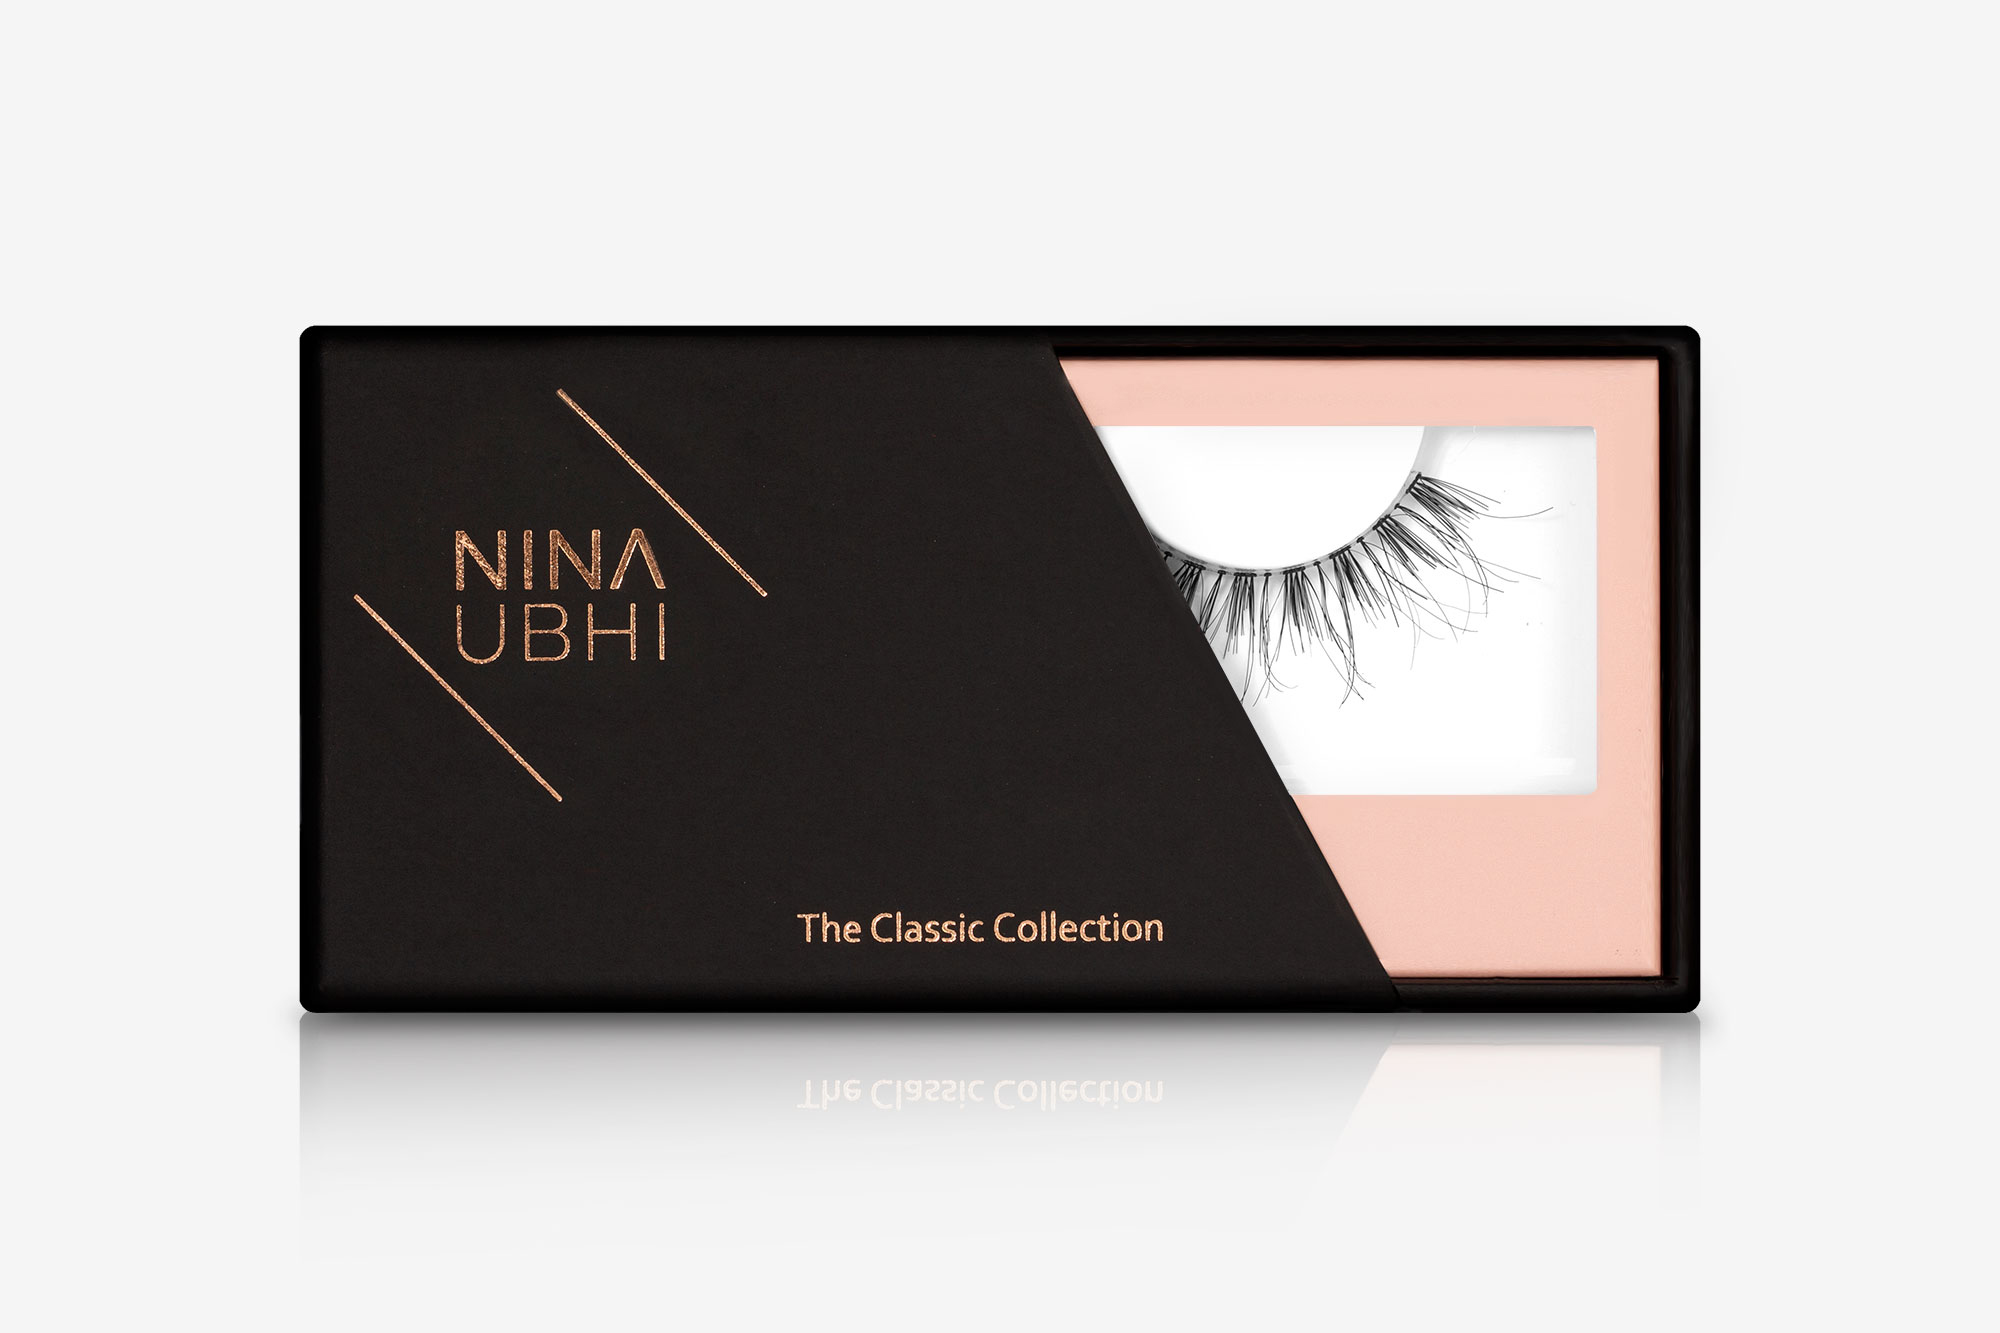 Carey False Eyelashes, false eyelashes in a Nina Ubhi branded box